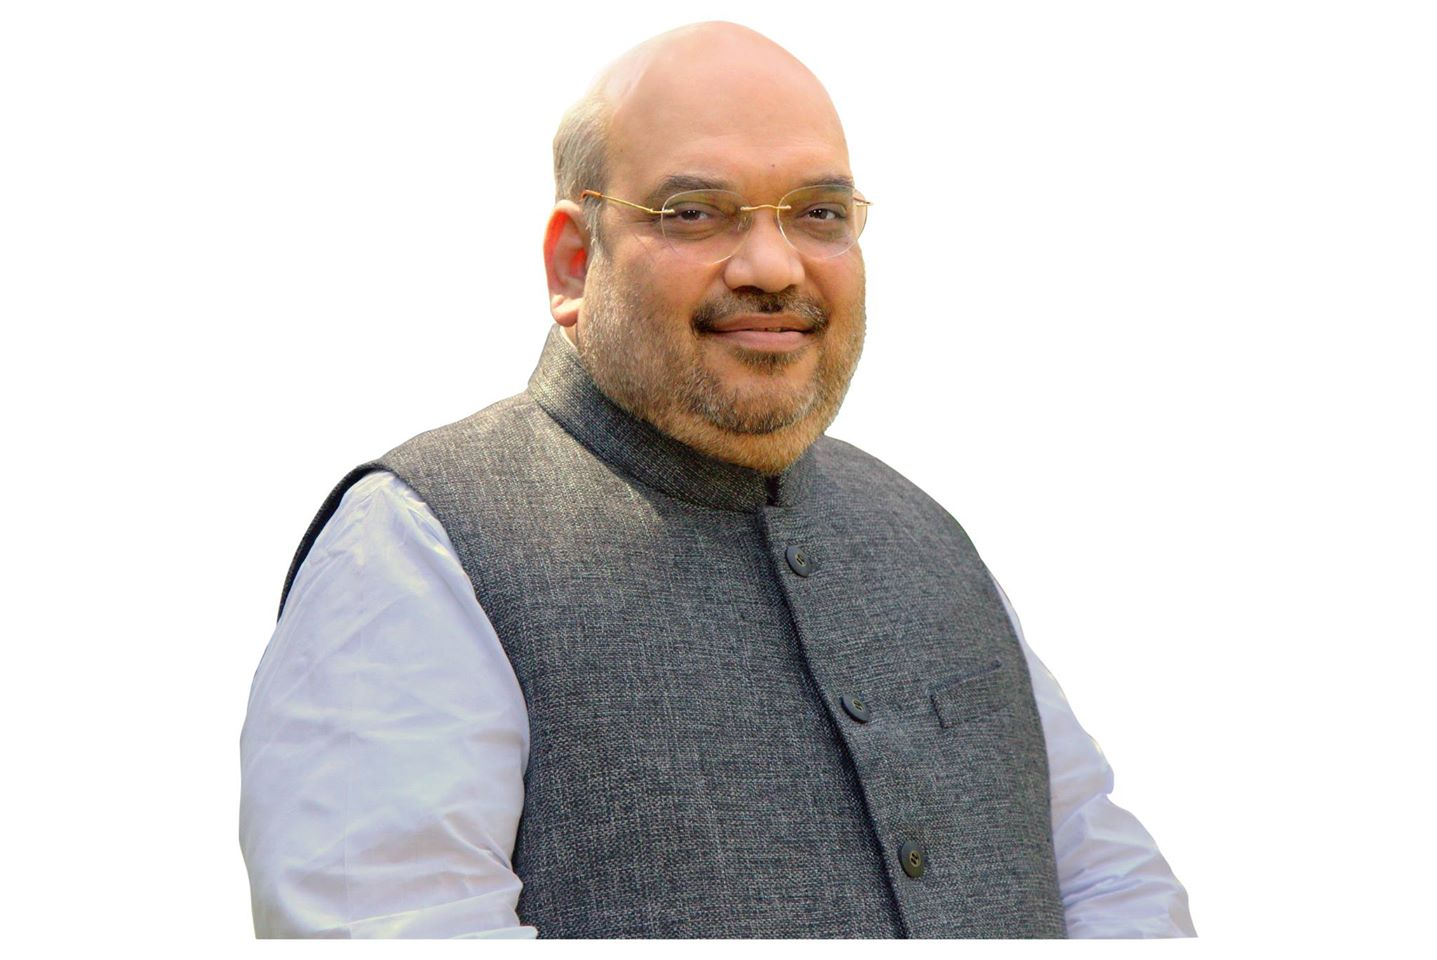 Amit Shah to attend Buddhist event in Kanpur